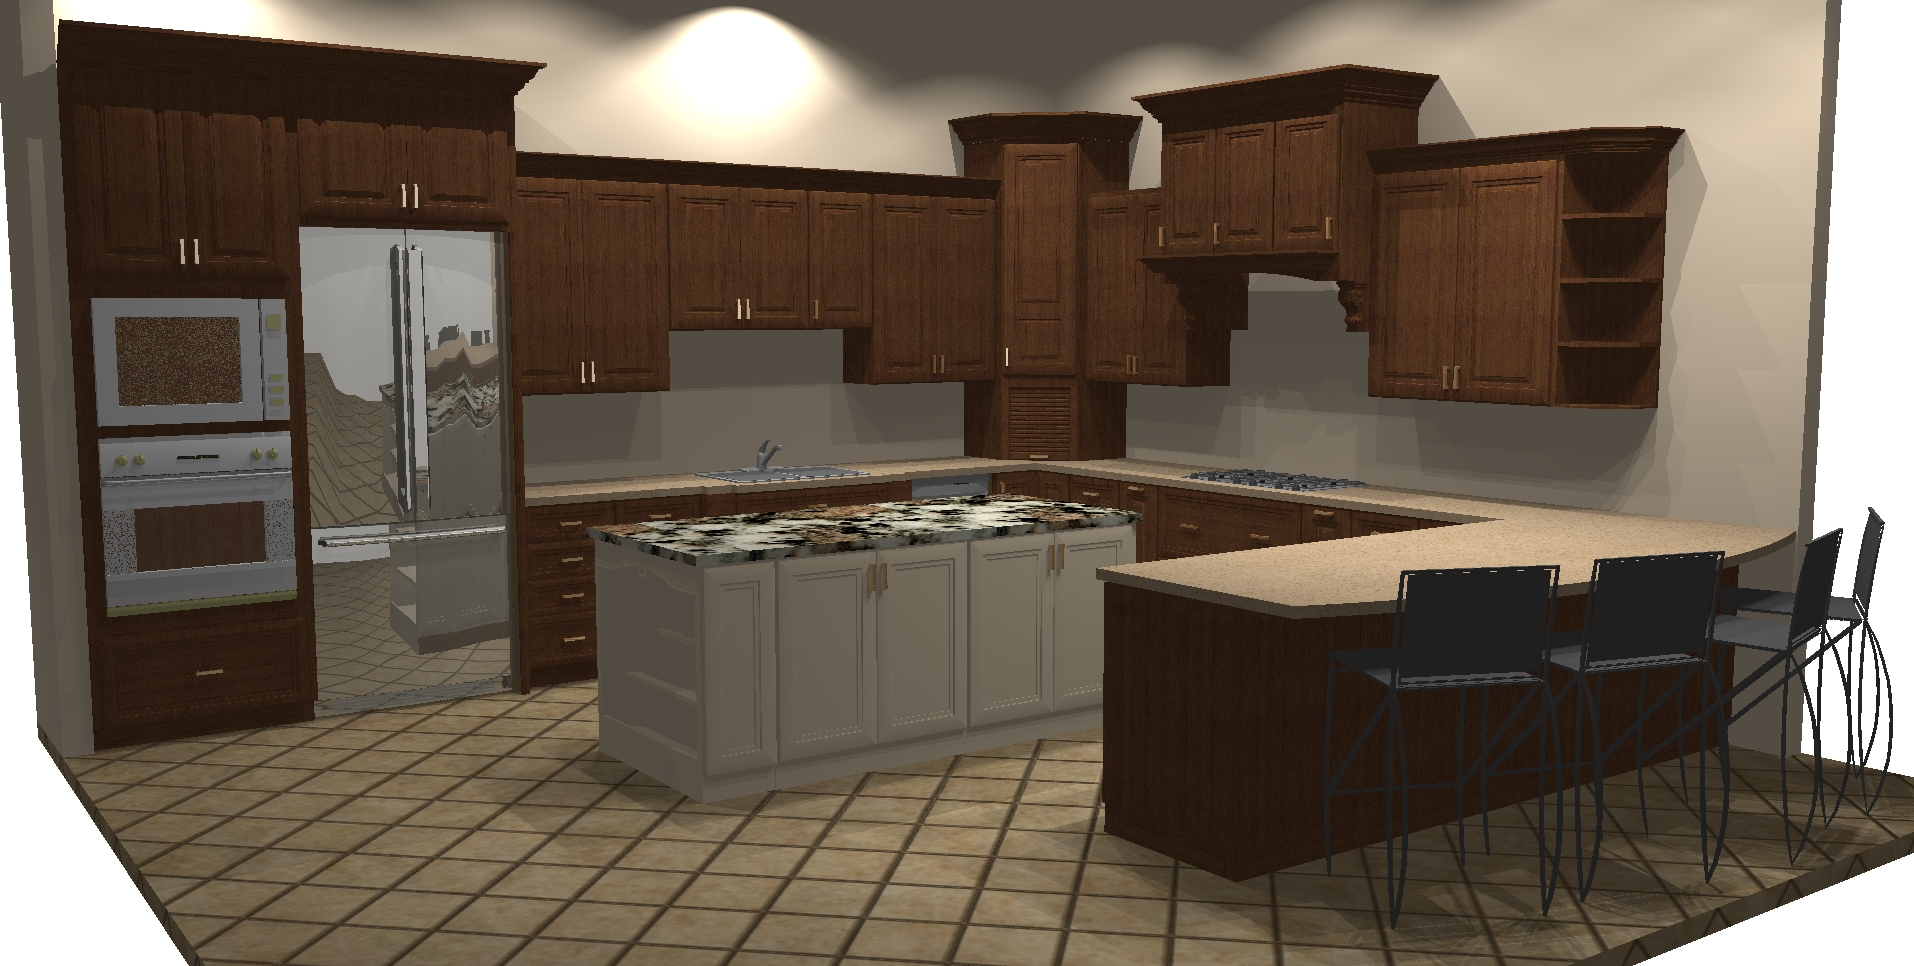 Showroom Kitchen Rendering Benner Rd